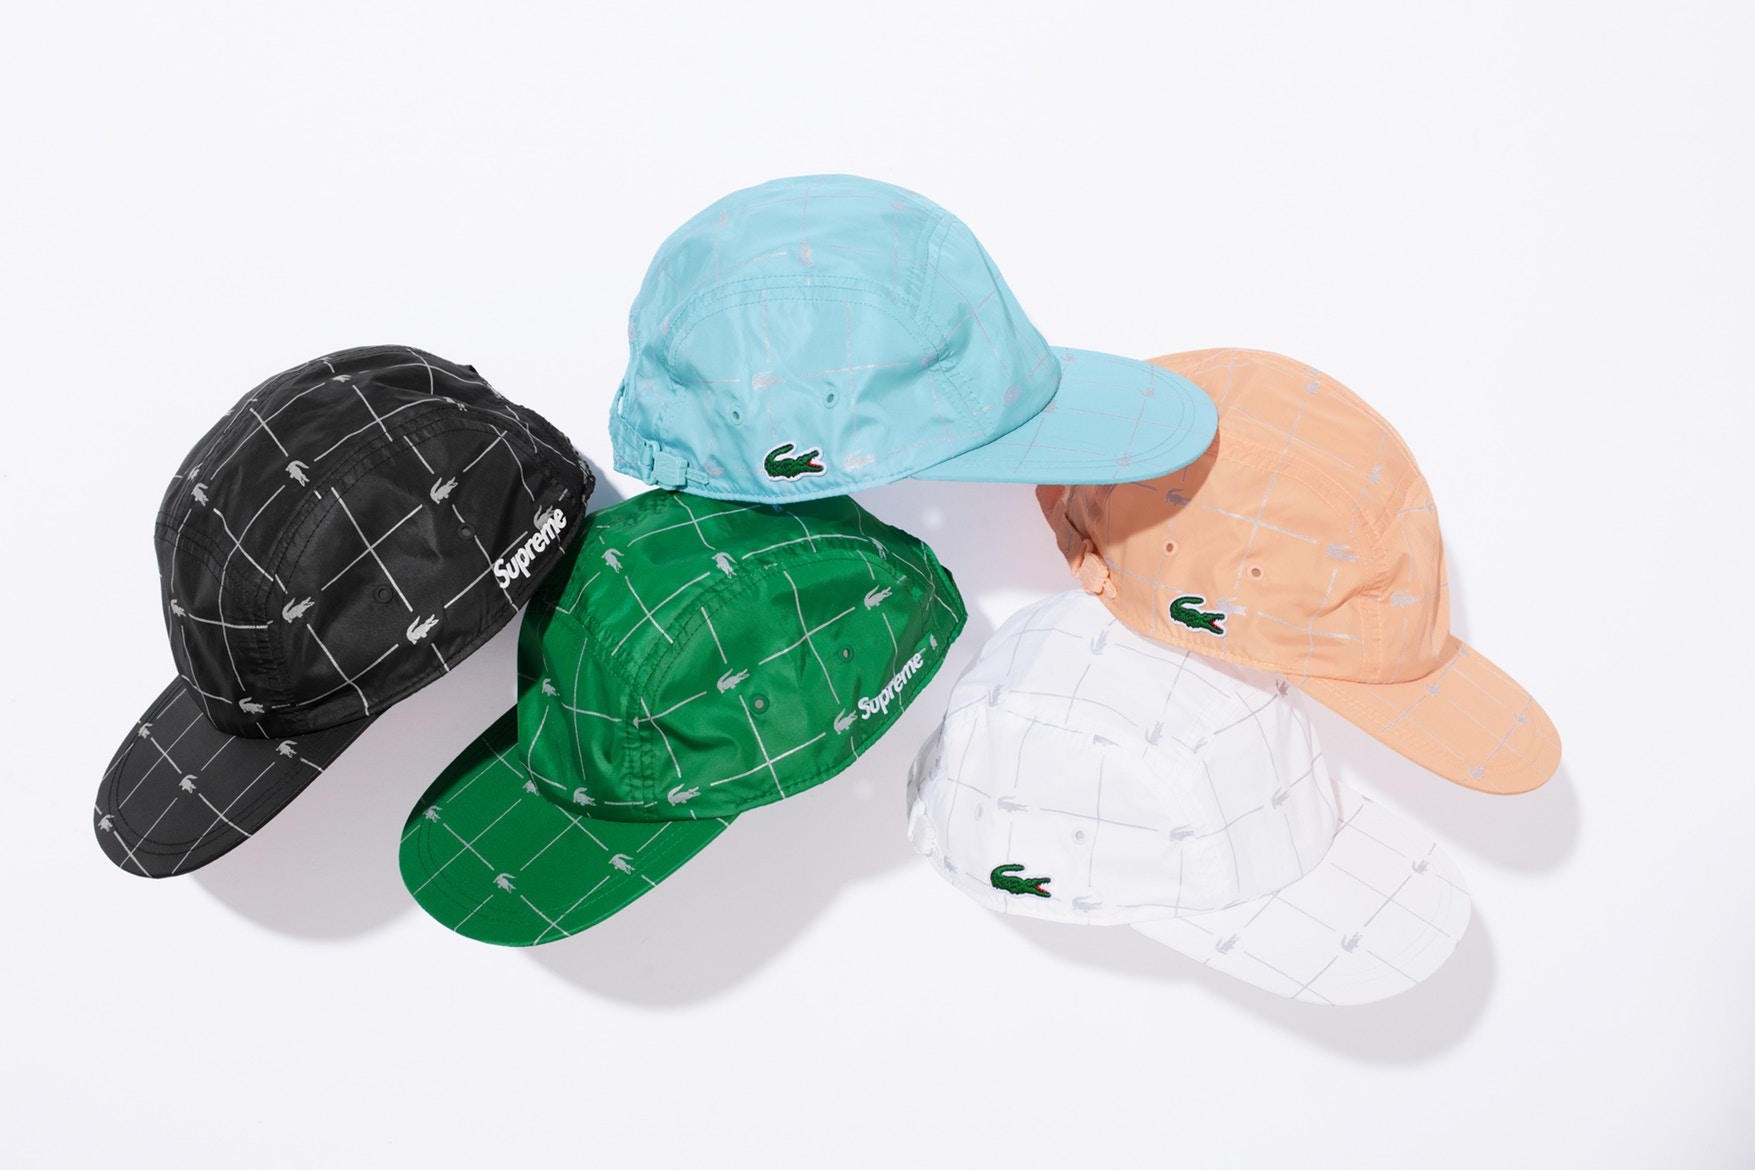 supreme-x-lacoste-spring-2018-collection-10